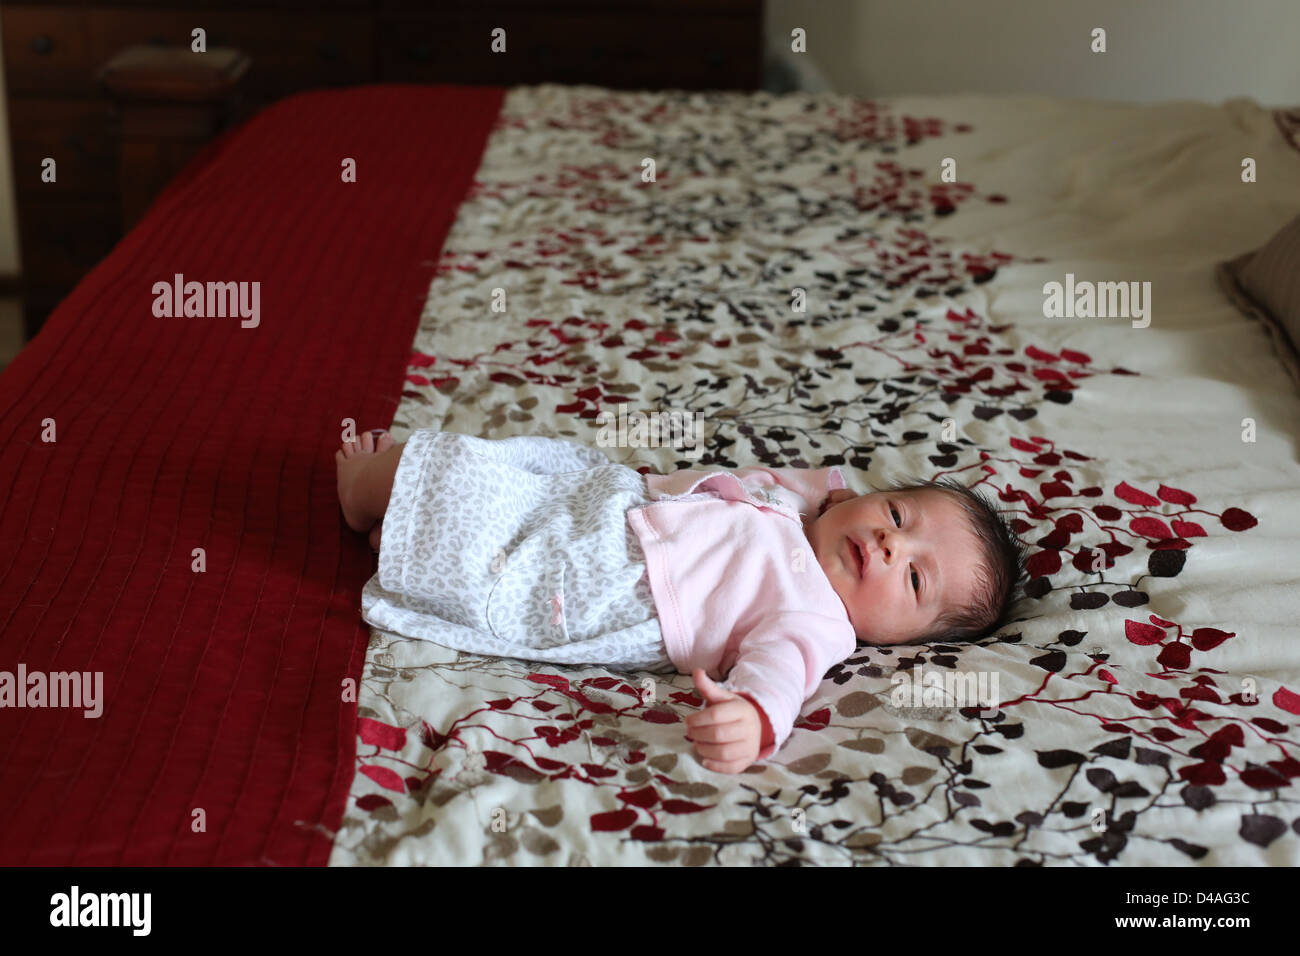 A tiny newborn baby lying on a large bed. Foto de stock